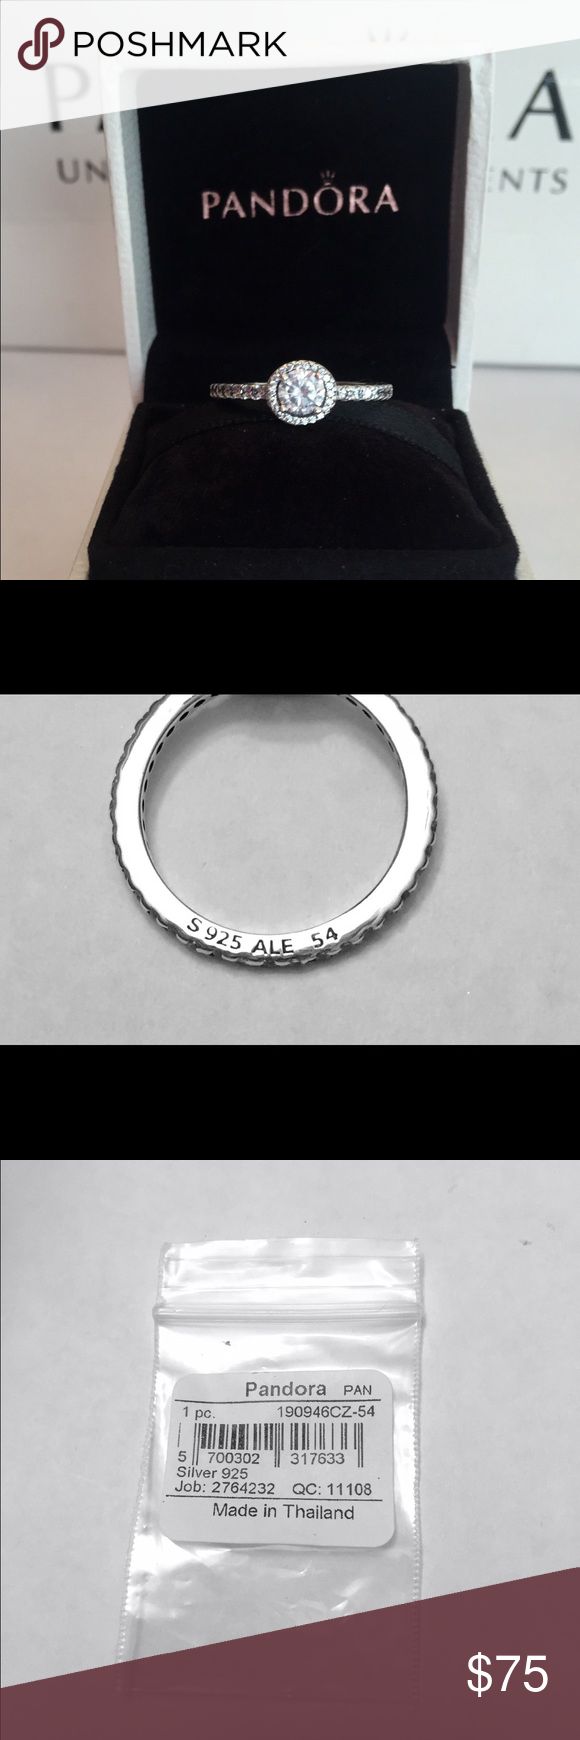 985c1cea1 ... s925 ale 8665b 90e4b; top quality authentic pandora classic elegance  ring w tags. sterling silver with czs. hallmark